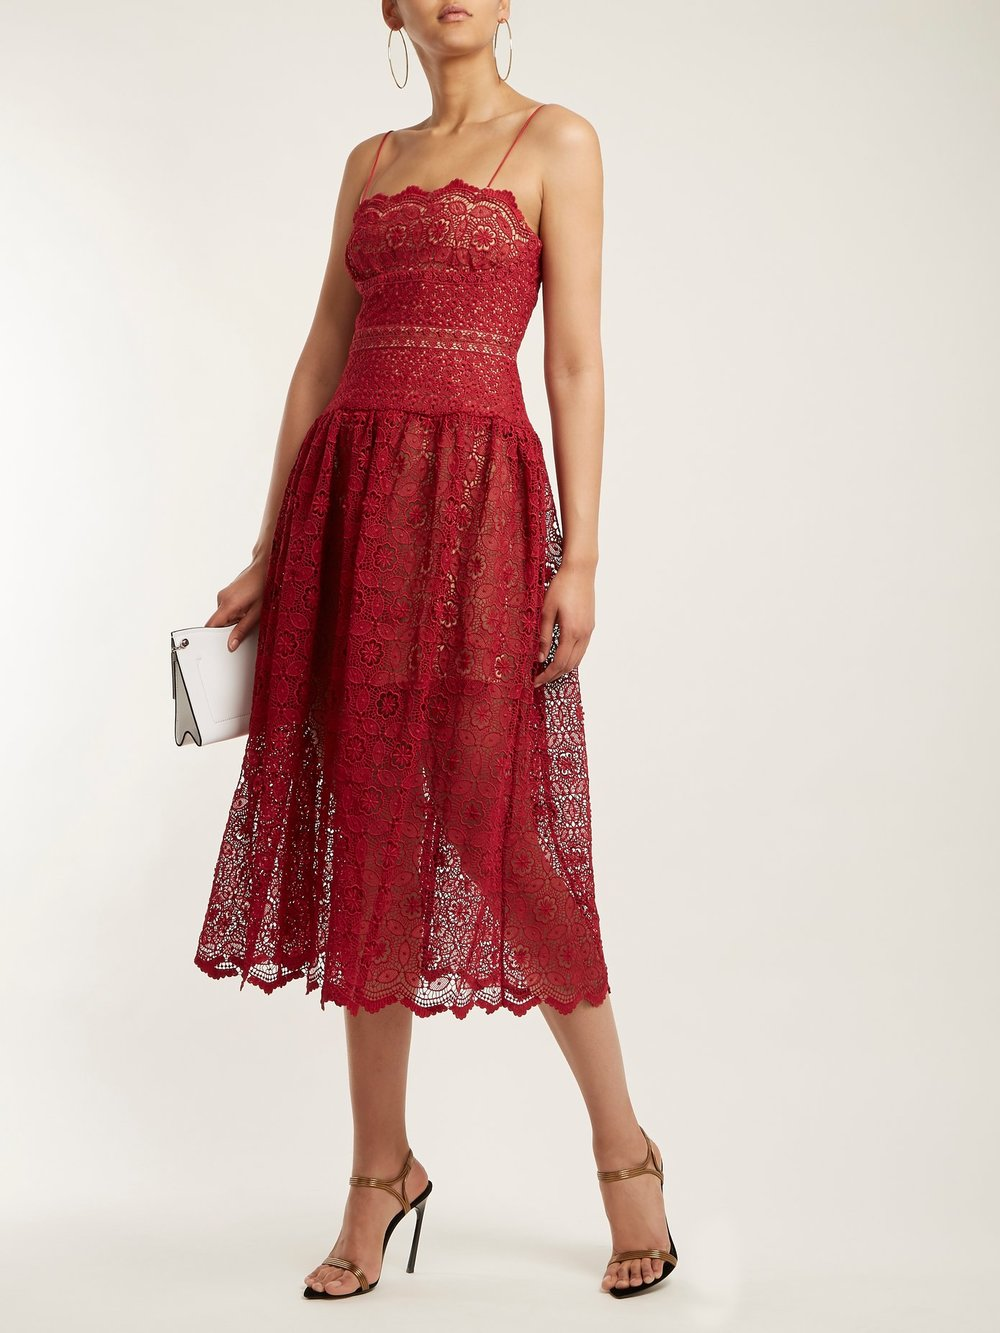 What Should Ladies Wear for a Jacket and Tie Dress Code Wedding or Event.jpg